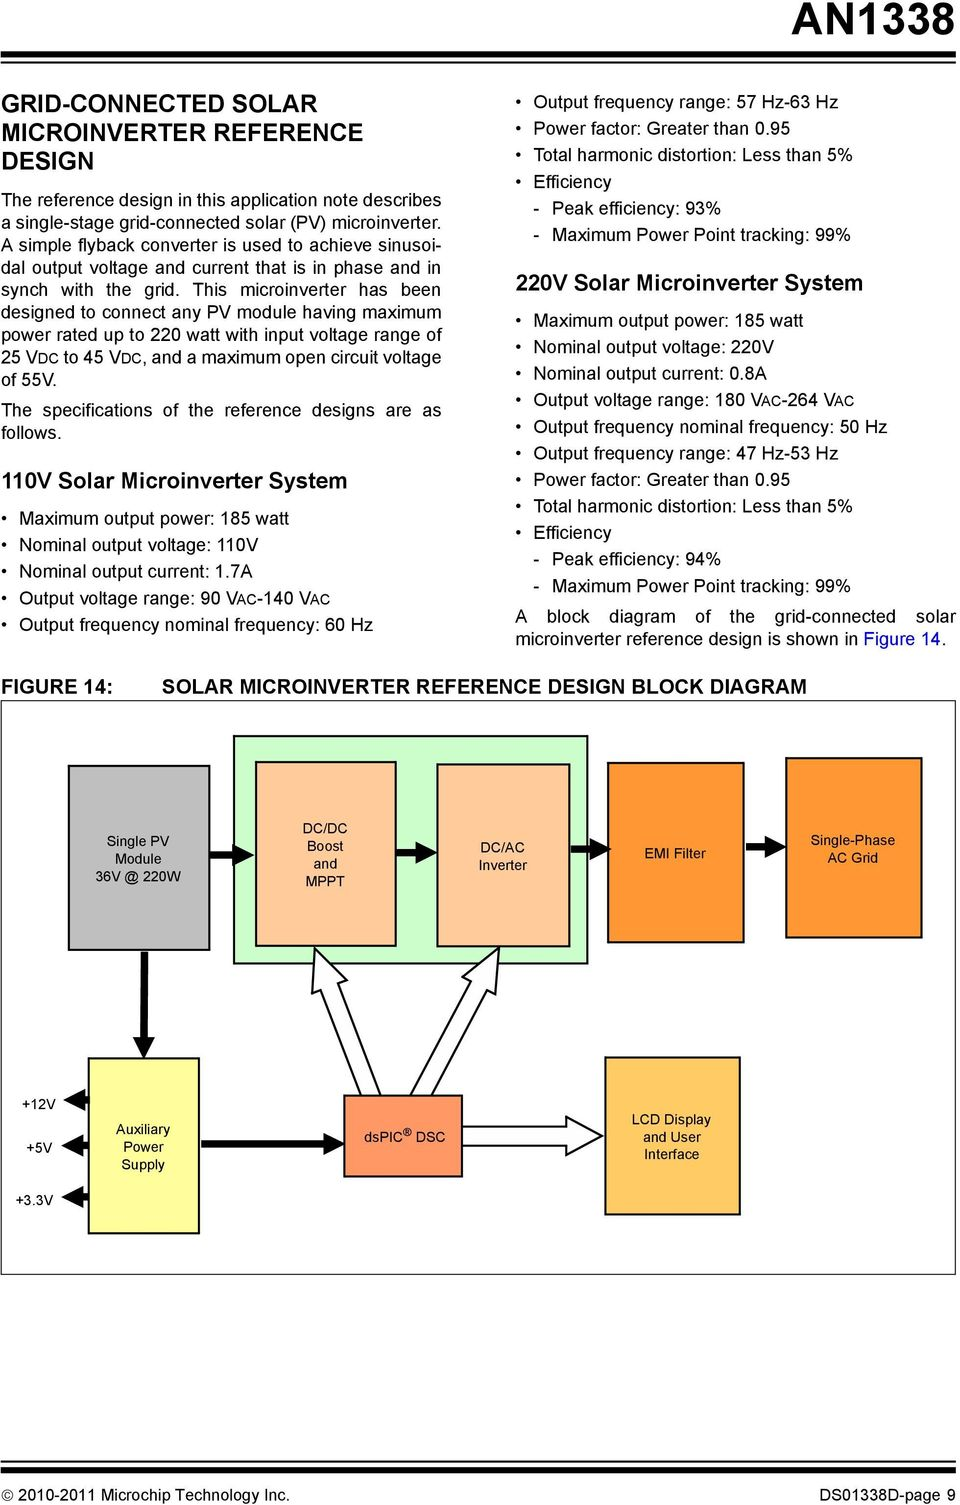 Grid Connected Solar Microinverter Reference Design Using A Dspic Besides Dc Ac Inverter Circuit Diagram Also Converter This Has Been Designed To Connect Any Pv Module Having Maximum Power Rated Up